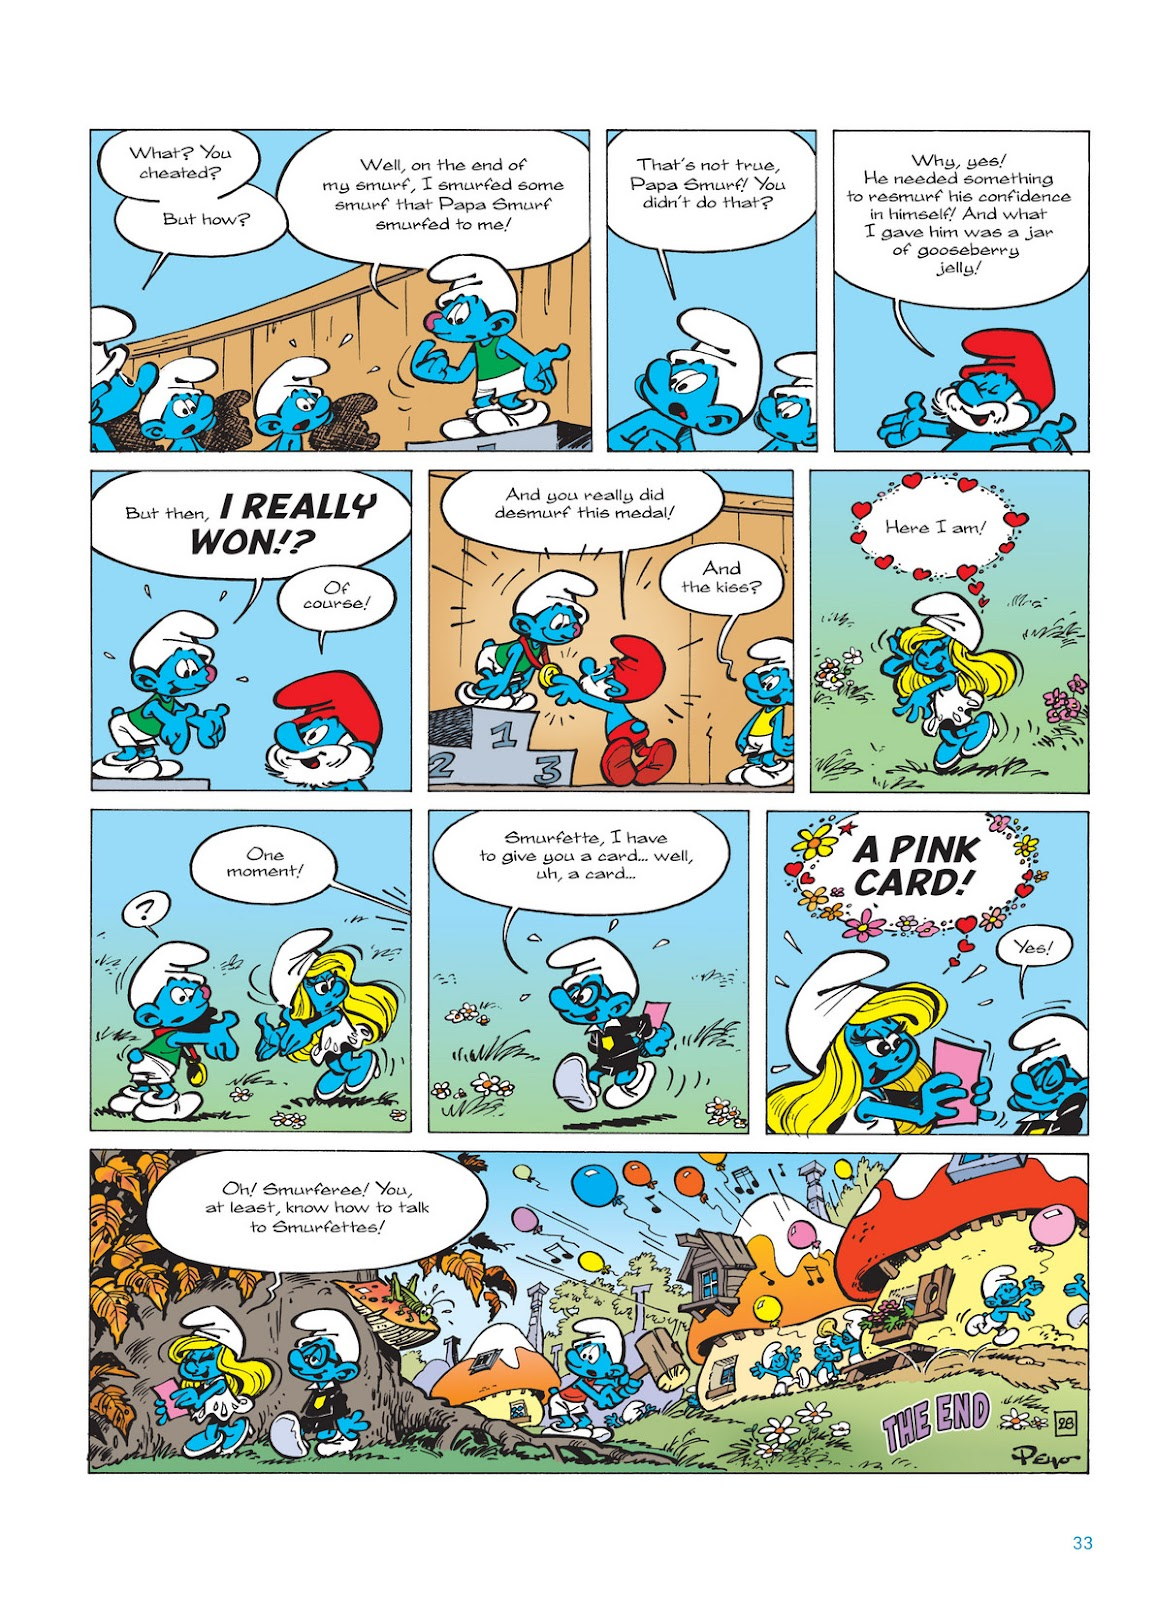 Read online The Smurfs comic -  Issue #11 - 33